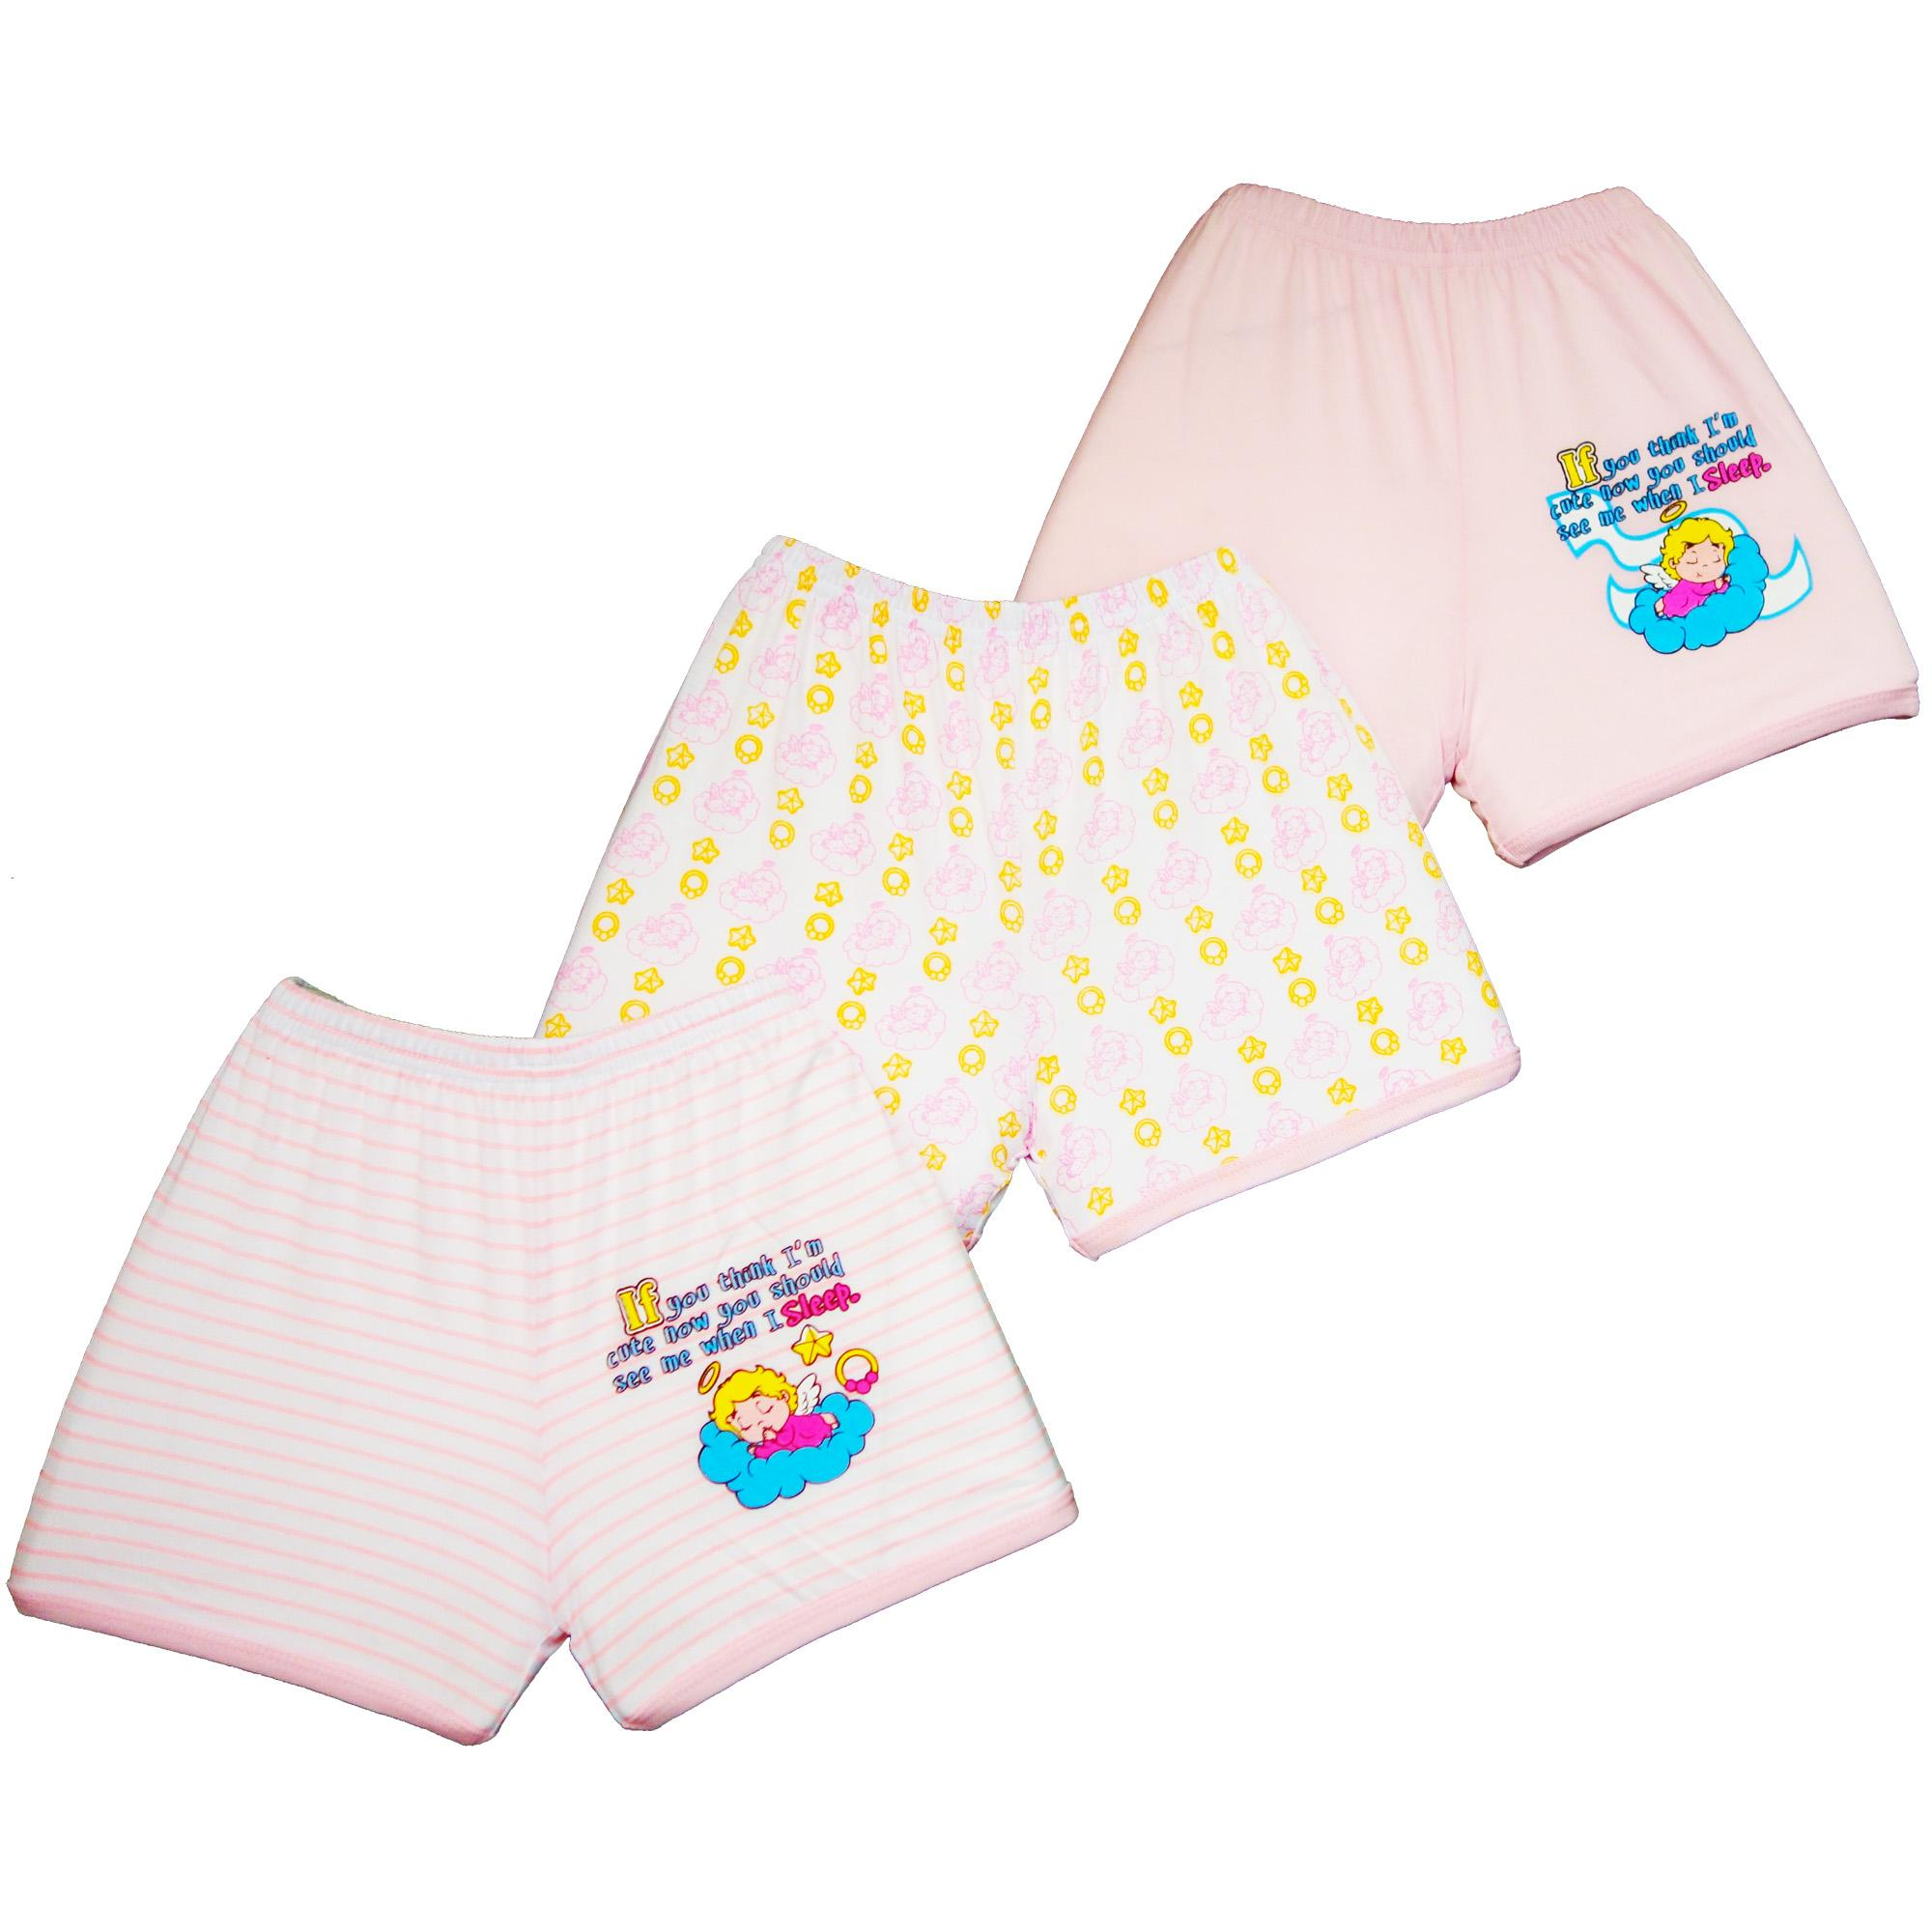 947b5e7386bc Bottom Clothes for Girls for sale - Baby Girls Bottoms online brands ...